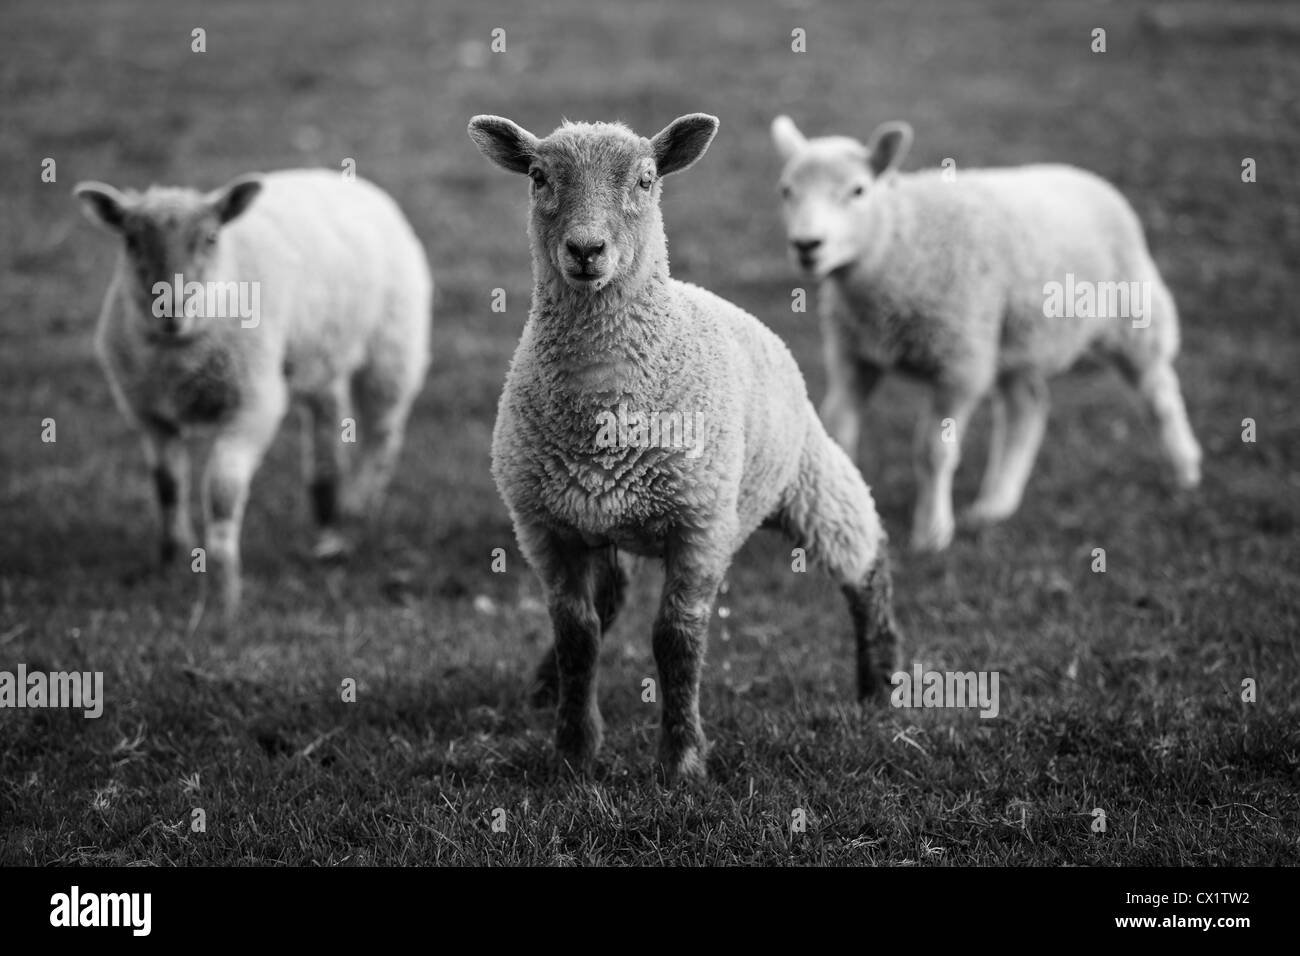 3 baby black and white lambs in countryside field - Stock Image